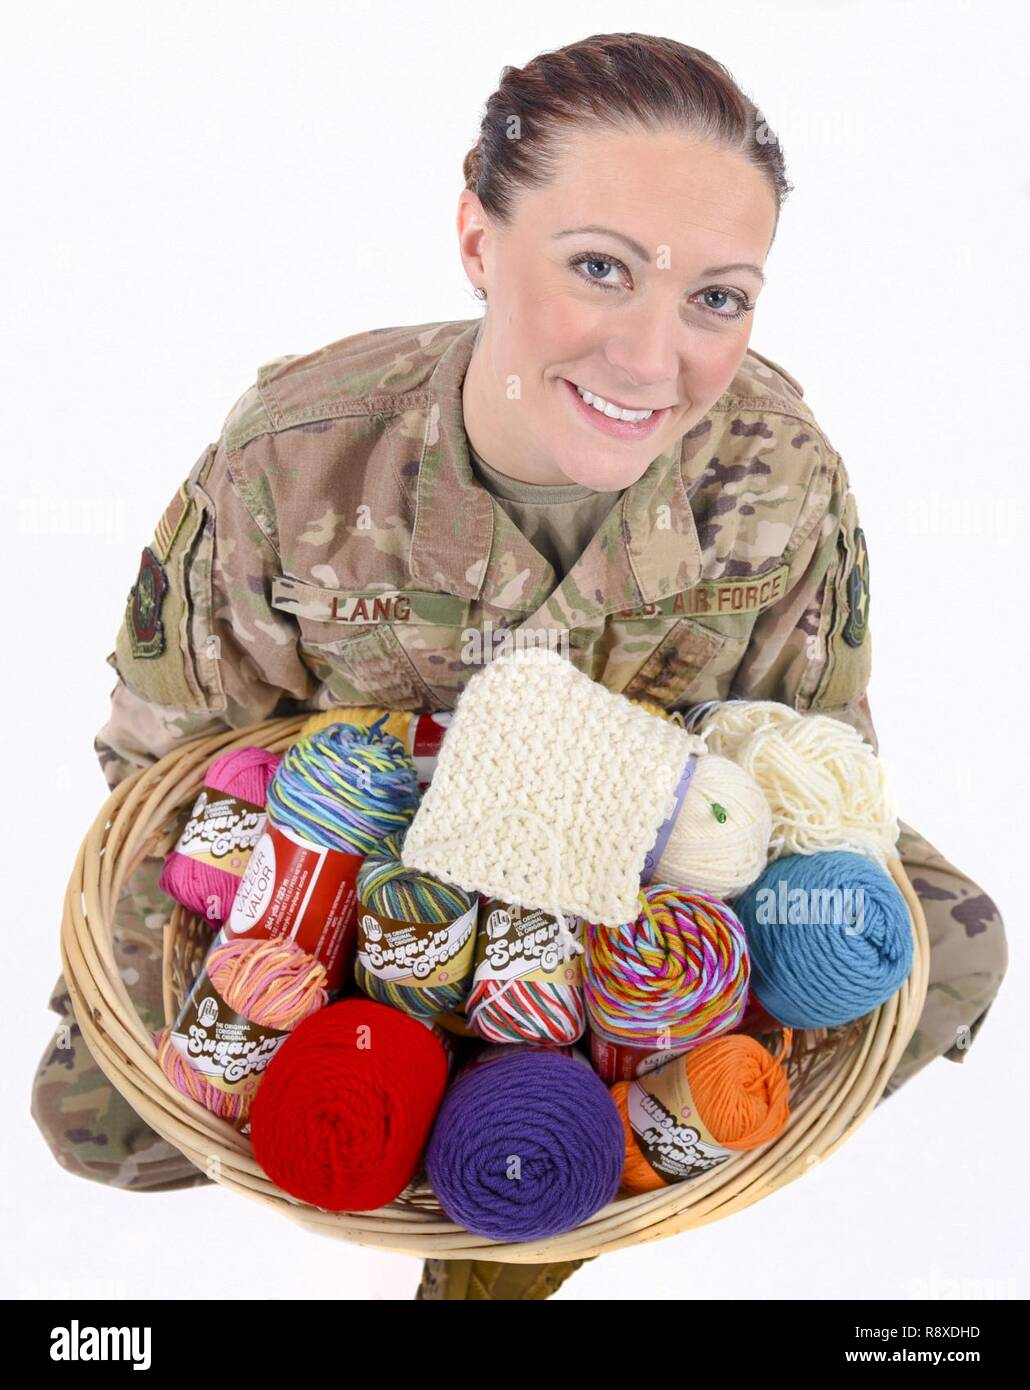 Tech. Sgt. Amber Lang assigned to the 171st Air Refueling Wing Maintenance Squadron near Pittsburgh poses for a photo Dec. 7, 2018. Lang volunteers at the Southwestern Veterans Center and teaches residents how to crochet. Stock Photo